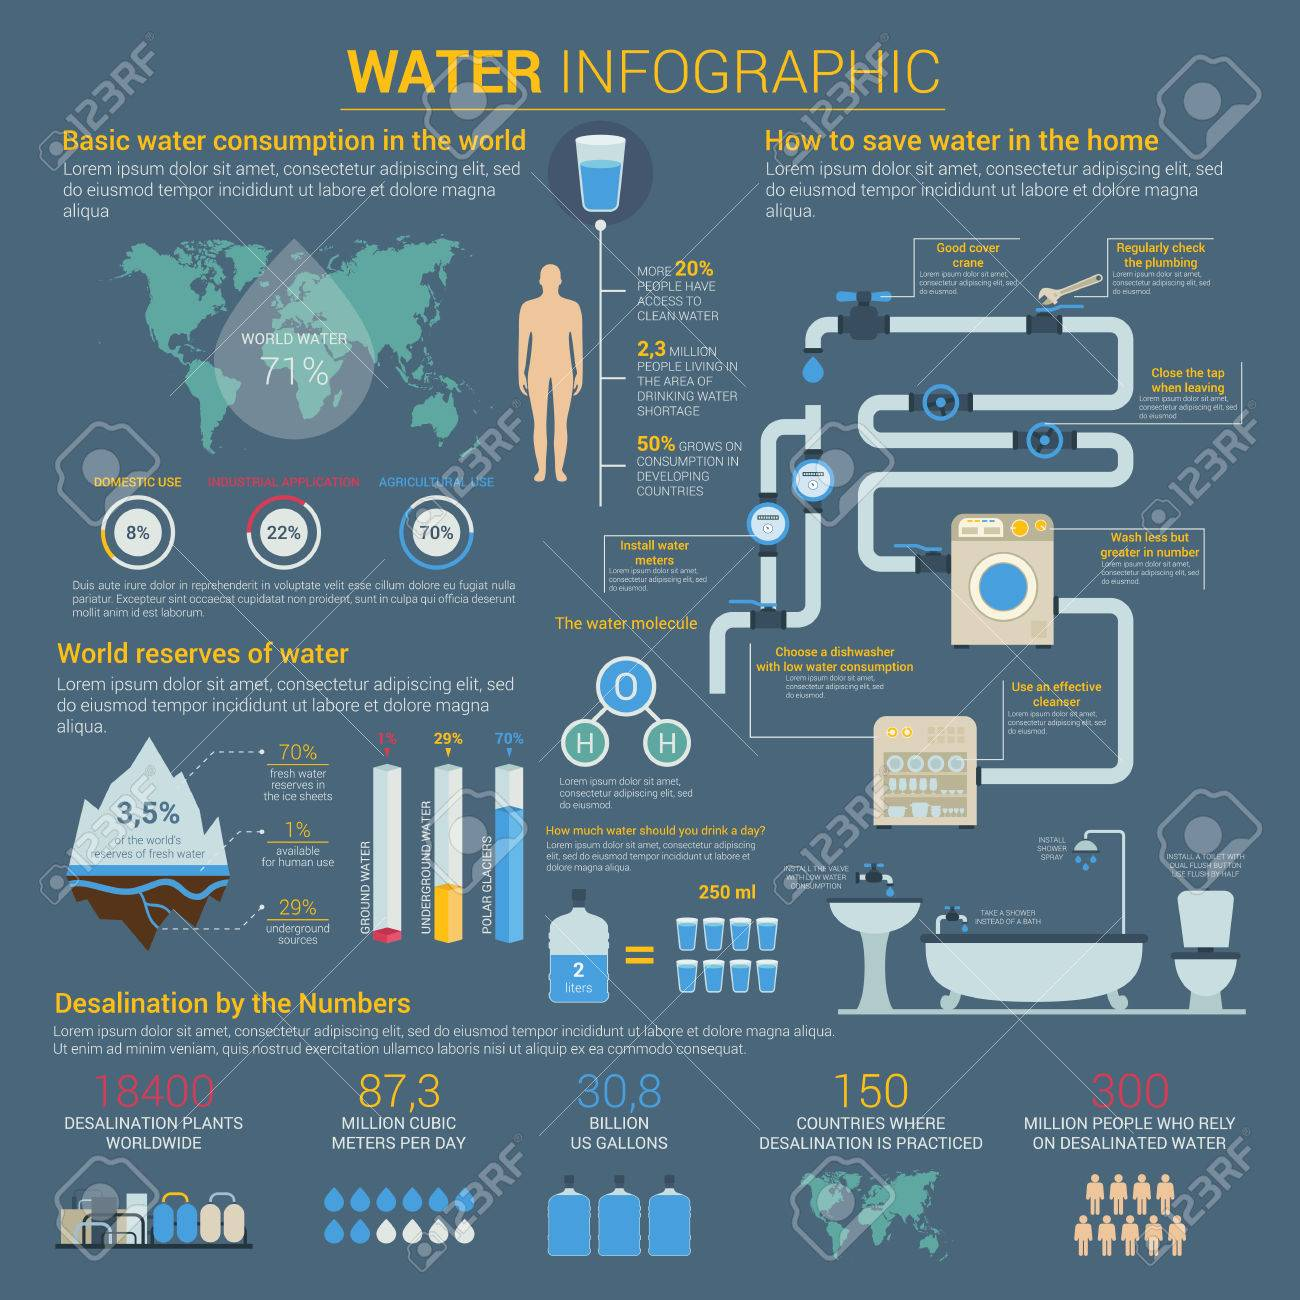 hight resolution of vector water or h2o infographic with bar charts and diagrams world map showing water consumption and iceberg with water reserves infographic template of